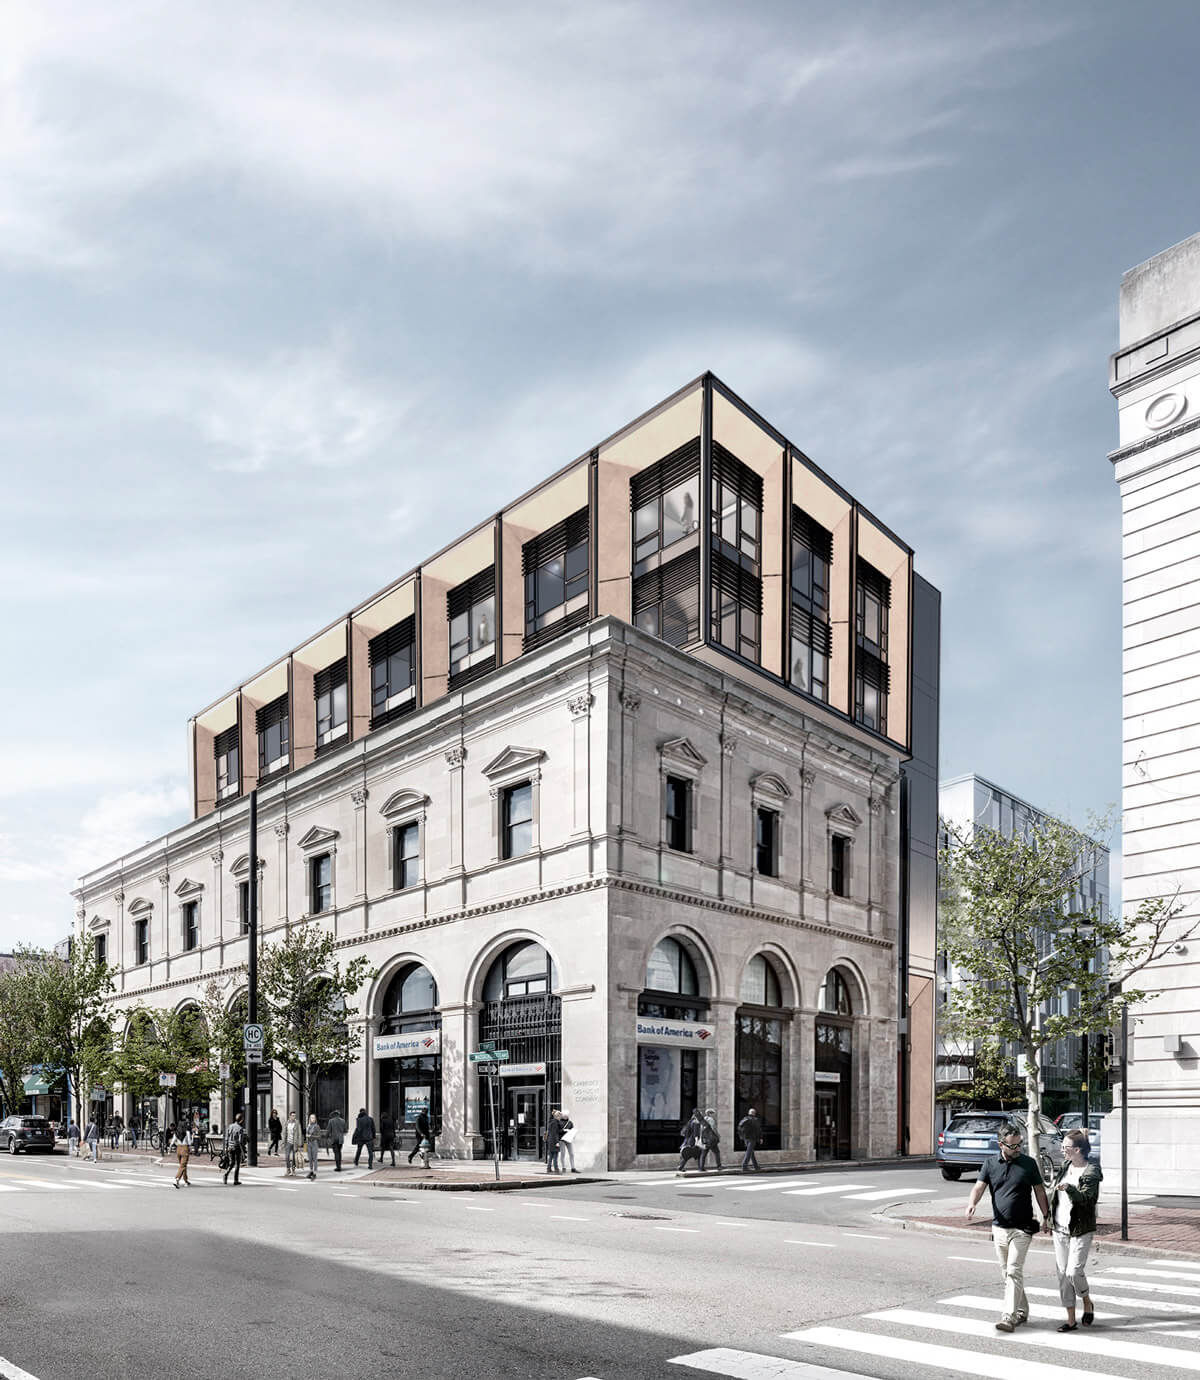 Exterior rendering of 727 Mass. Ave, Cambridge, the former Cambridge Gas Light Building, renovated as a boutique hotel